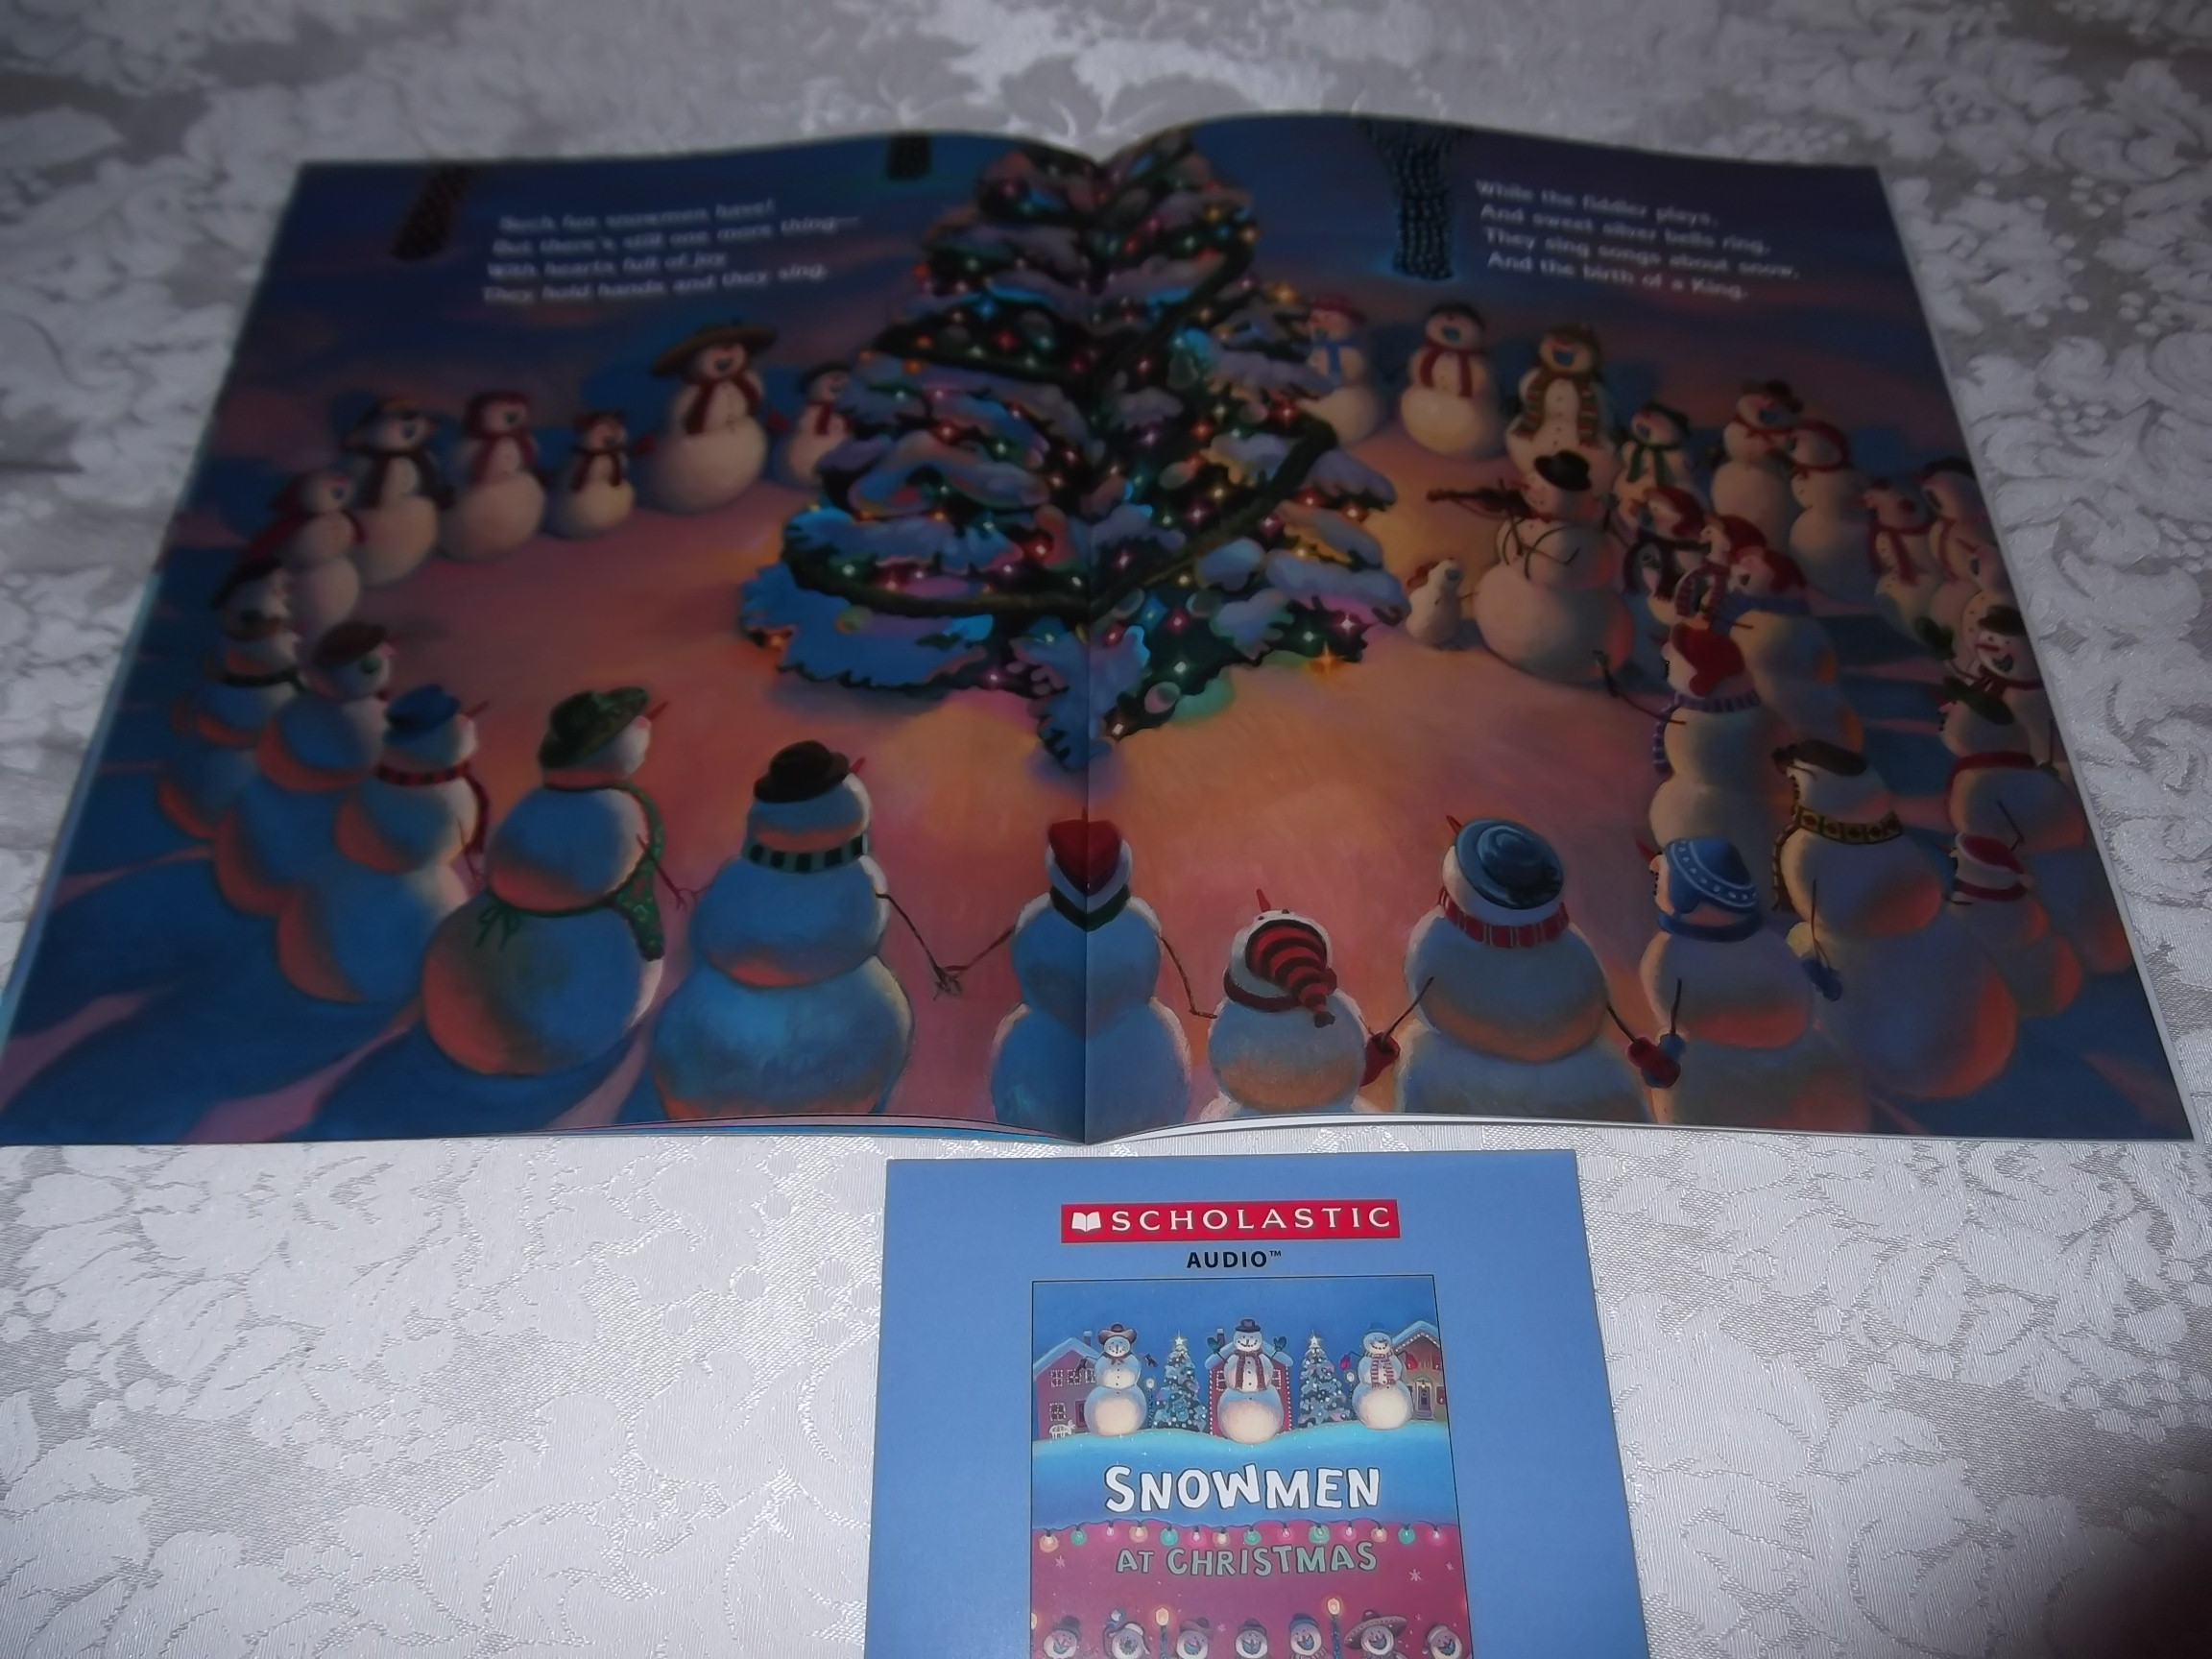 Image 4 of Snowmen At Christmas Caralyn Buehner Audio CD and SC Brand New